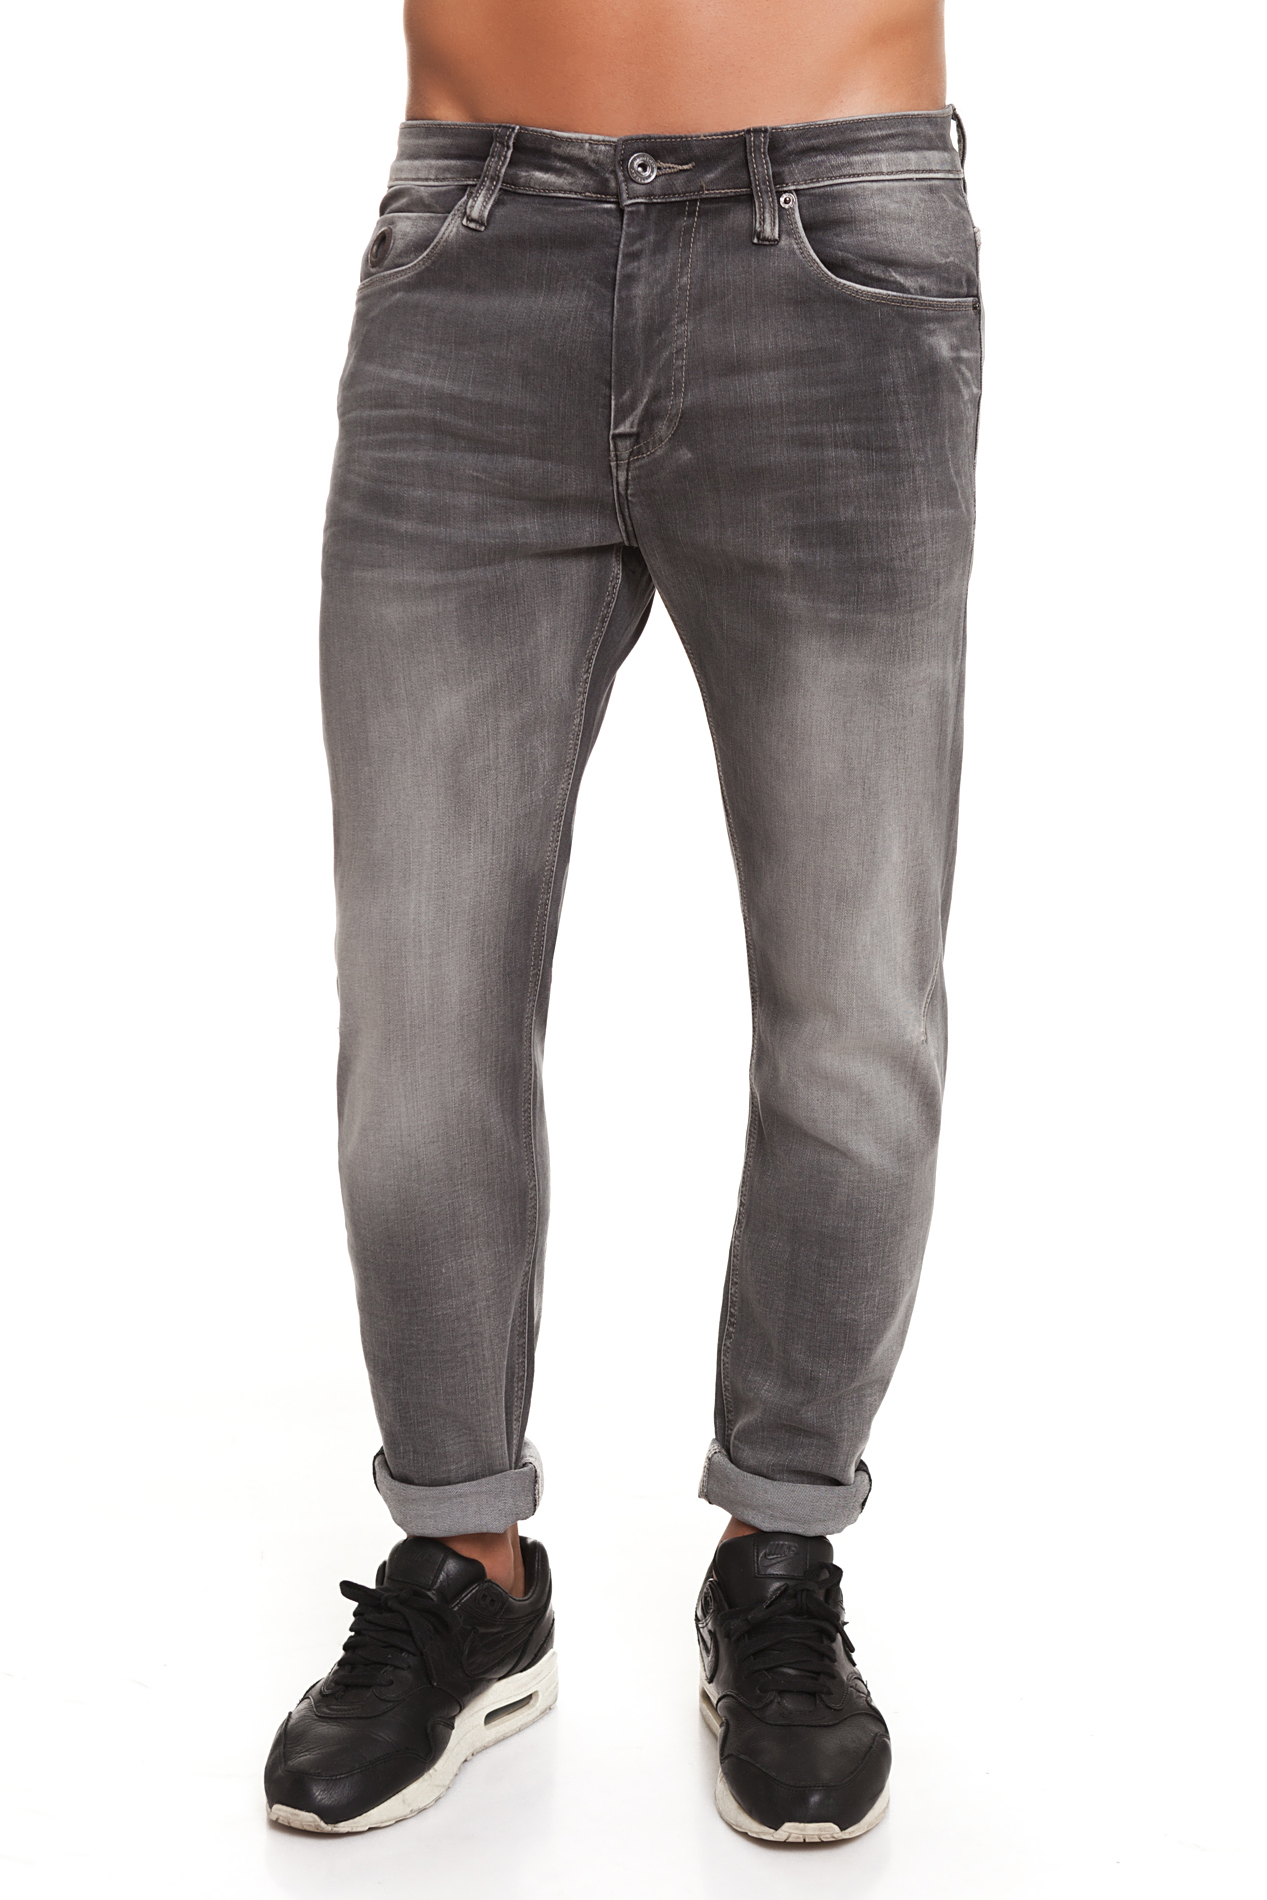 CR7 Jeans For Men Color Indigo Grey Casual Jeans Casual Slim Thin Straight Pockets CRD005A